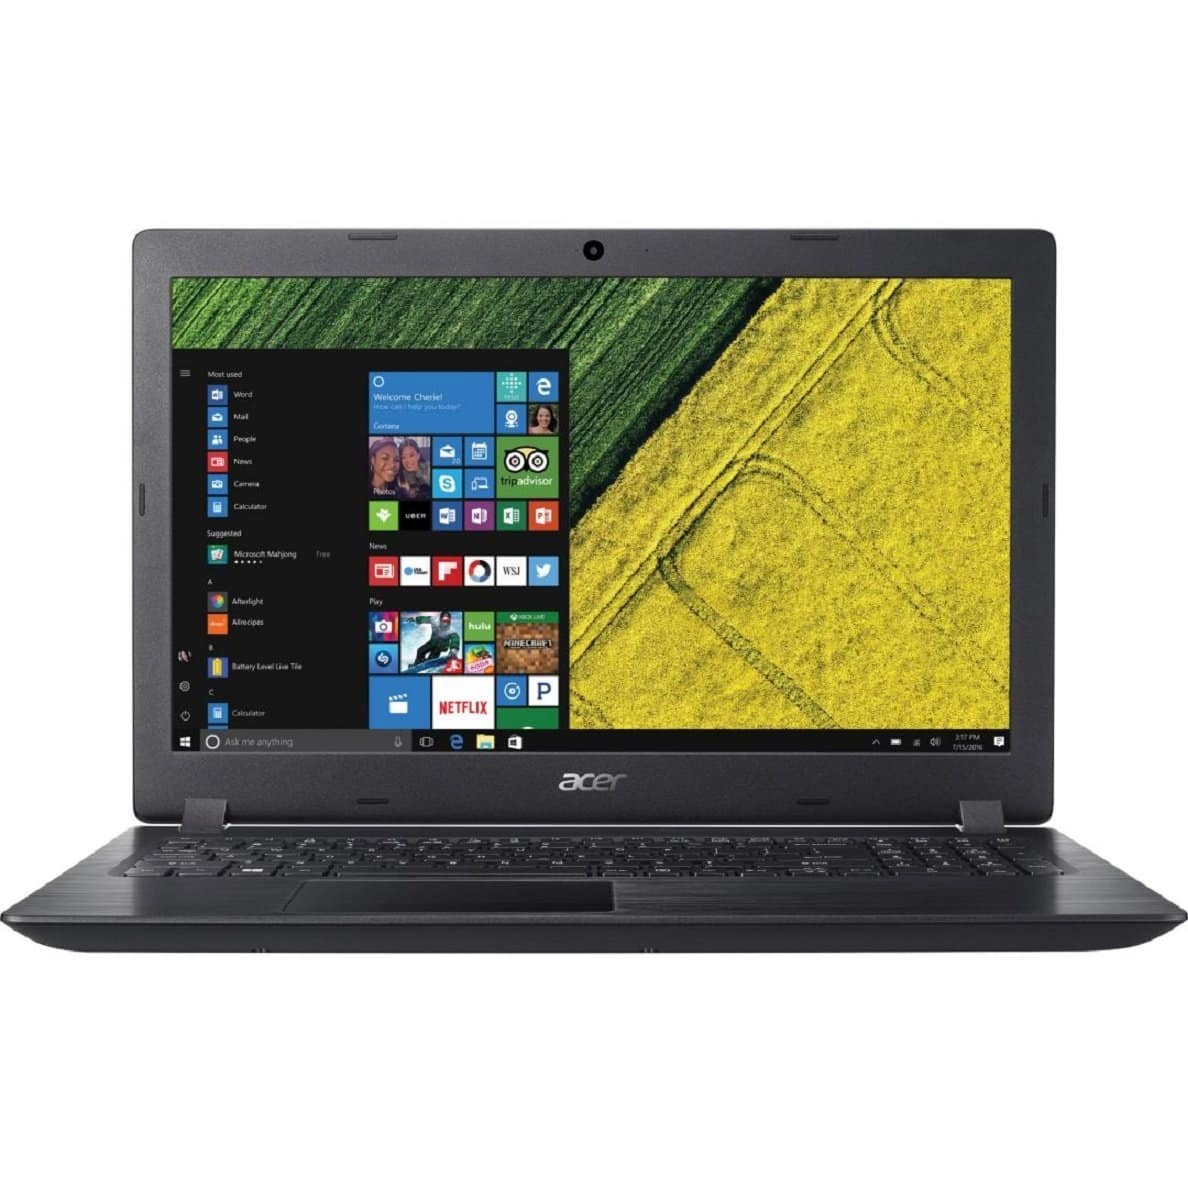 """Acer Aspire 3 15.6"""" Laptop: A9-9420, 6GB DDR4, 1TB HDD, Radeon R5, Win 10 $259.99 + Free Shipping / Pickup @ Staples"""